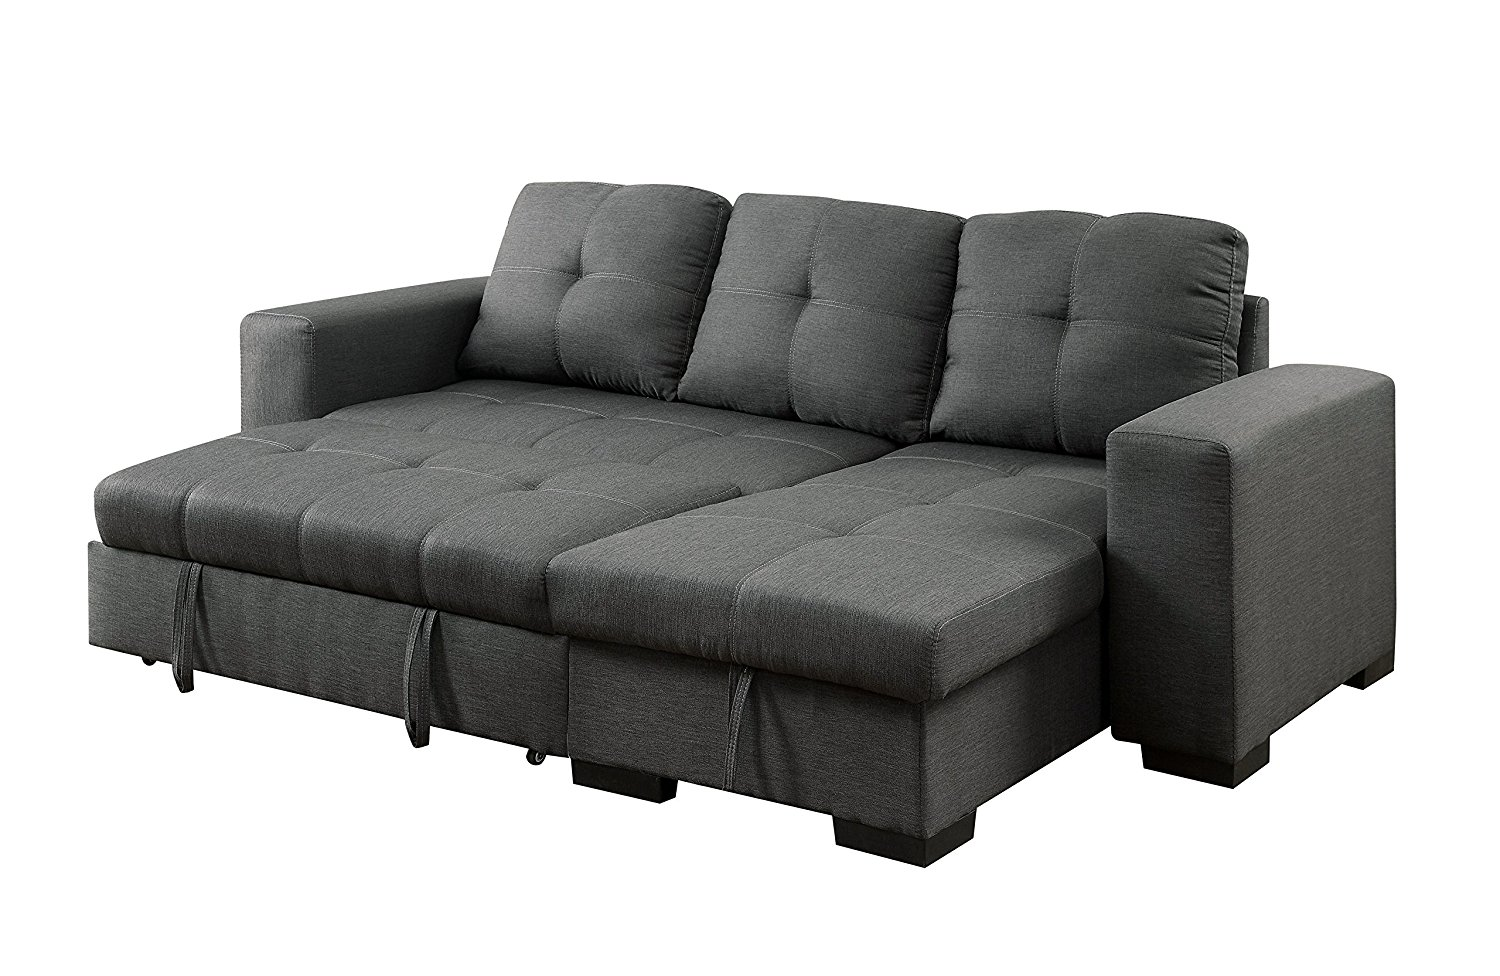 Sectional Couch With Pull Out Bed - Decor Ideas